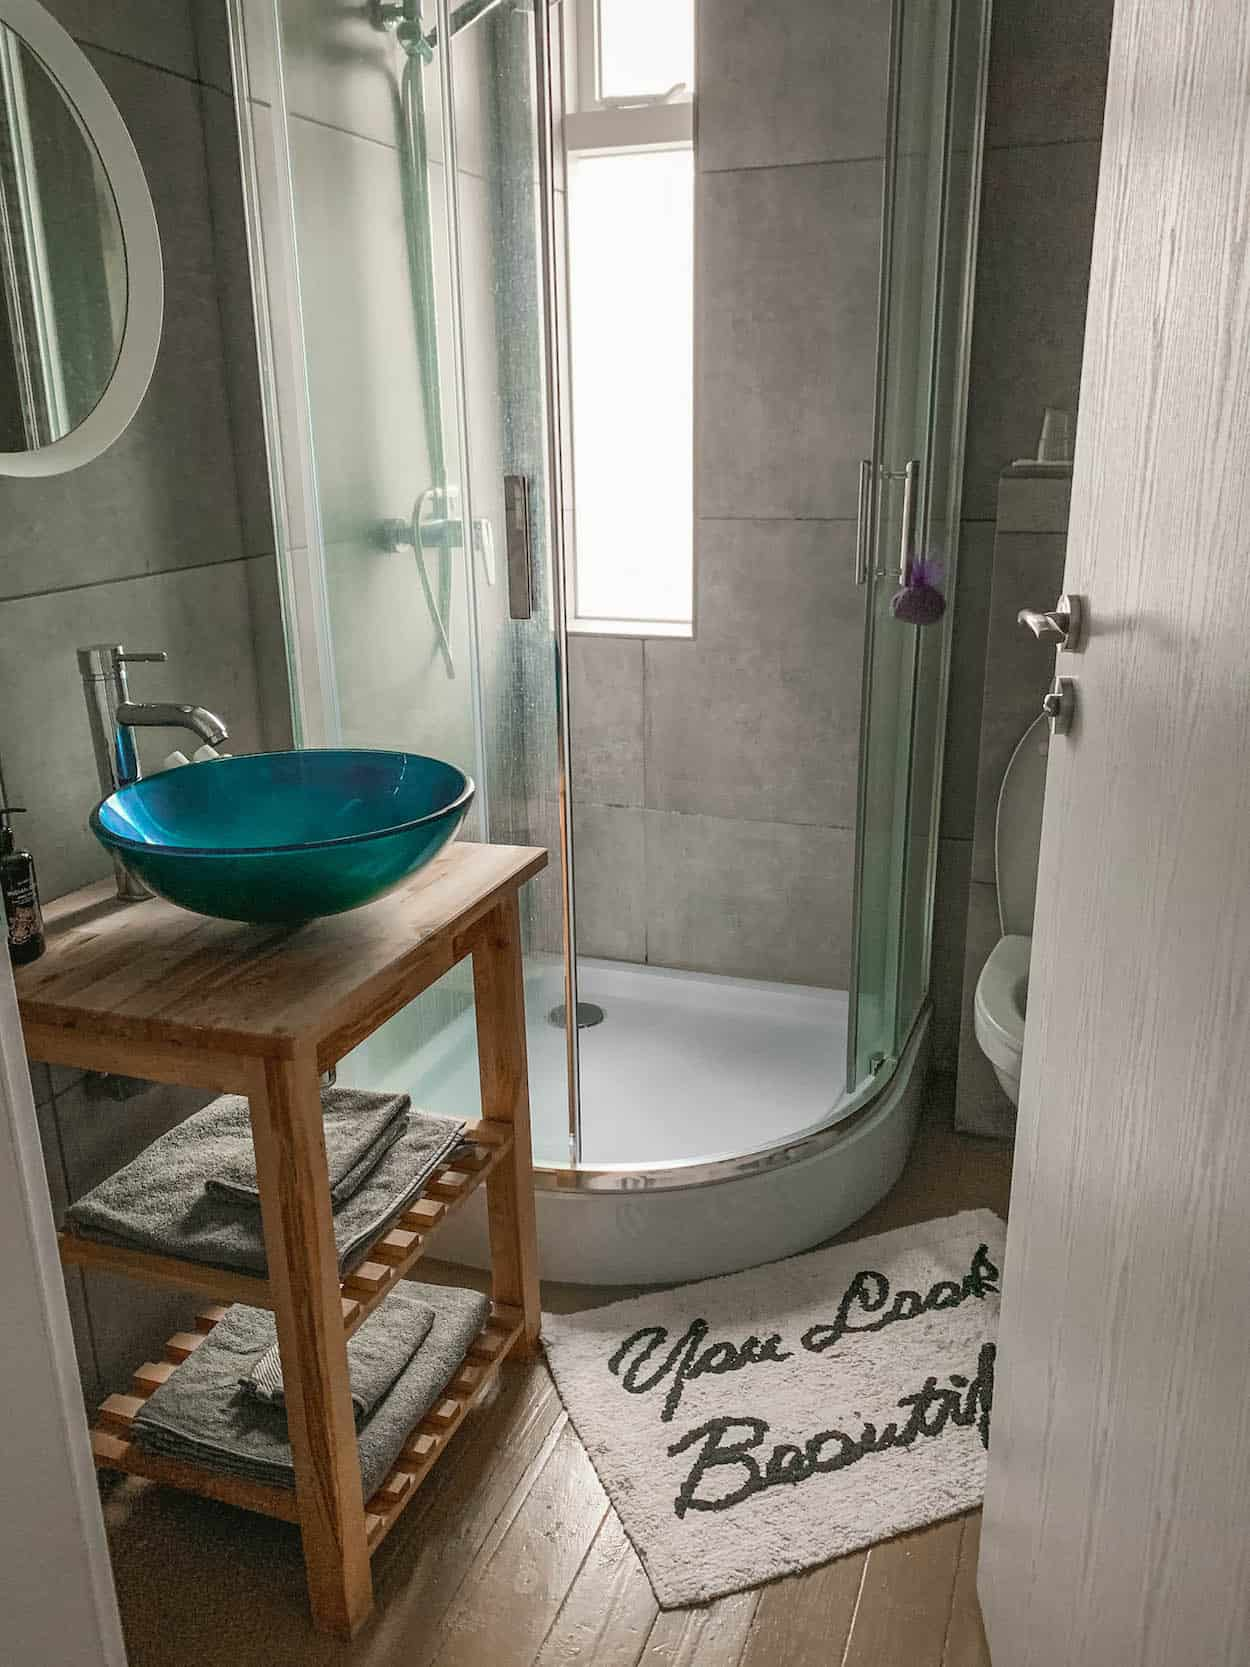 A modern renovated bathroom inside an Airbnb in Iceland